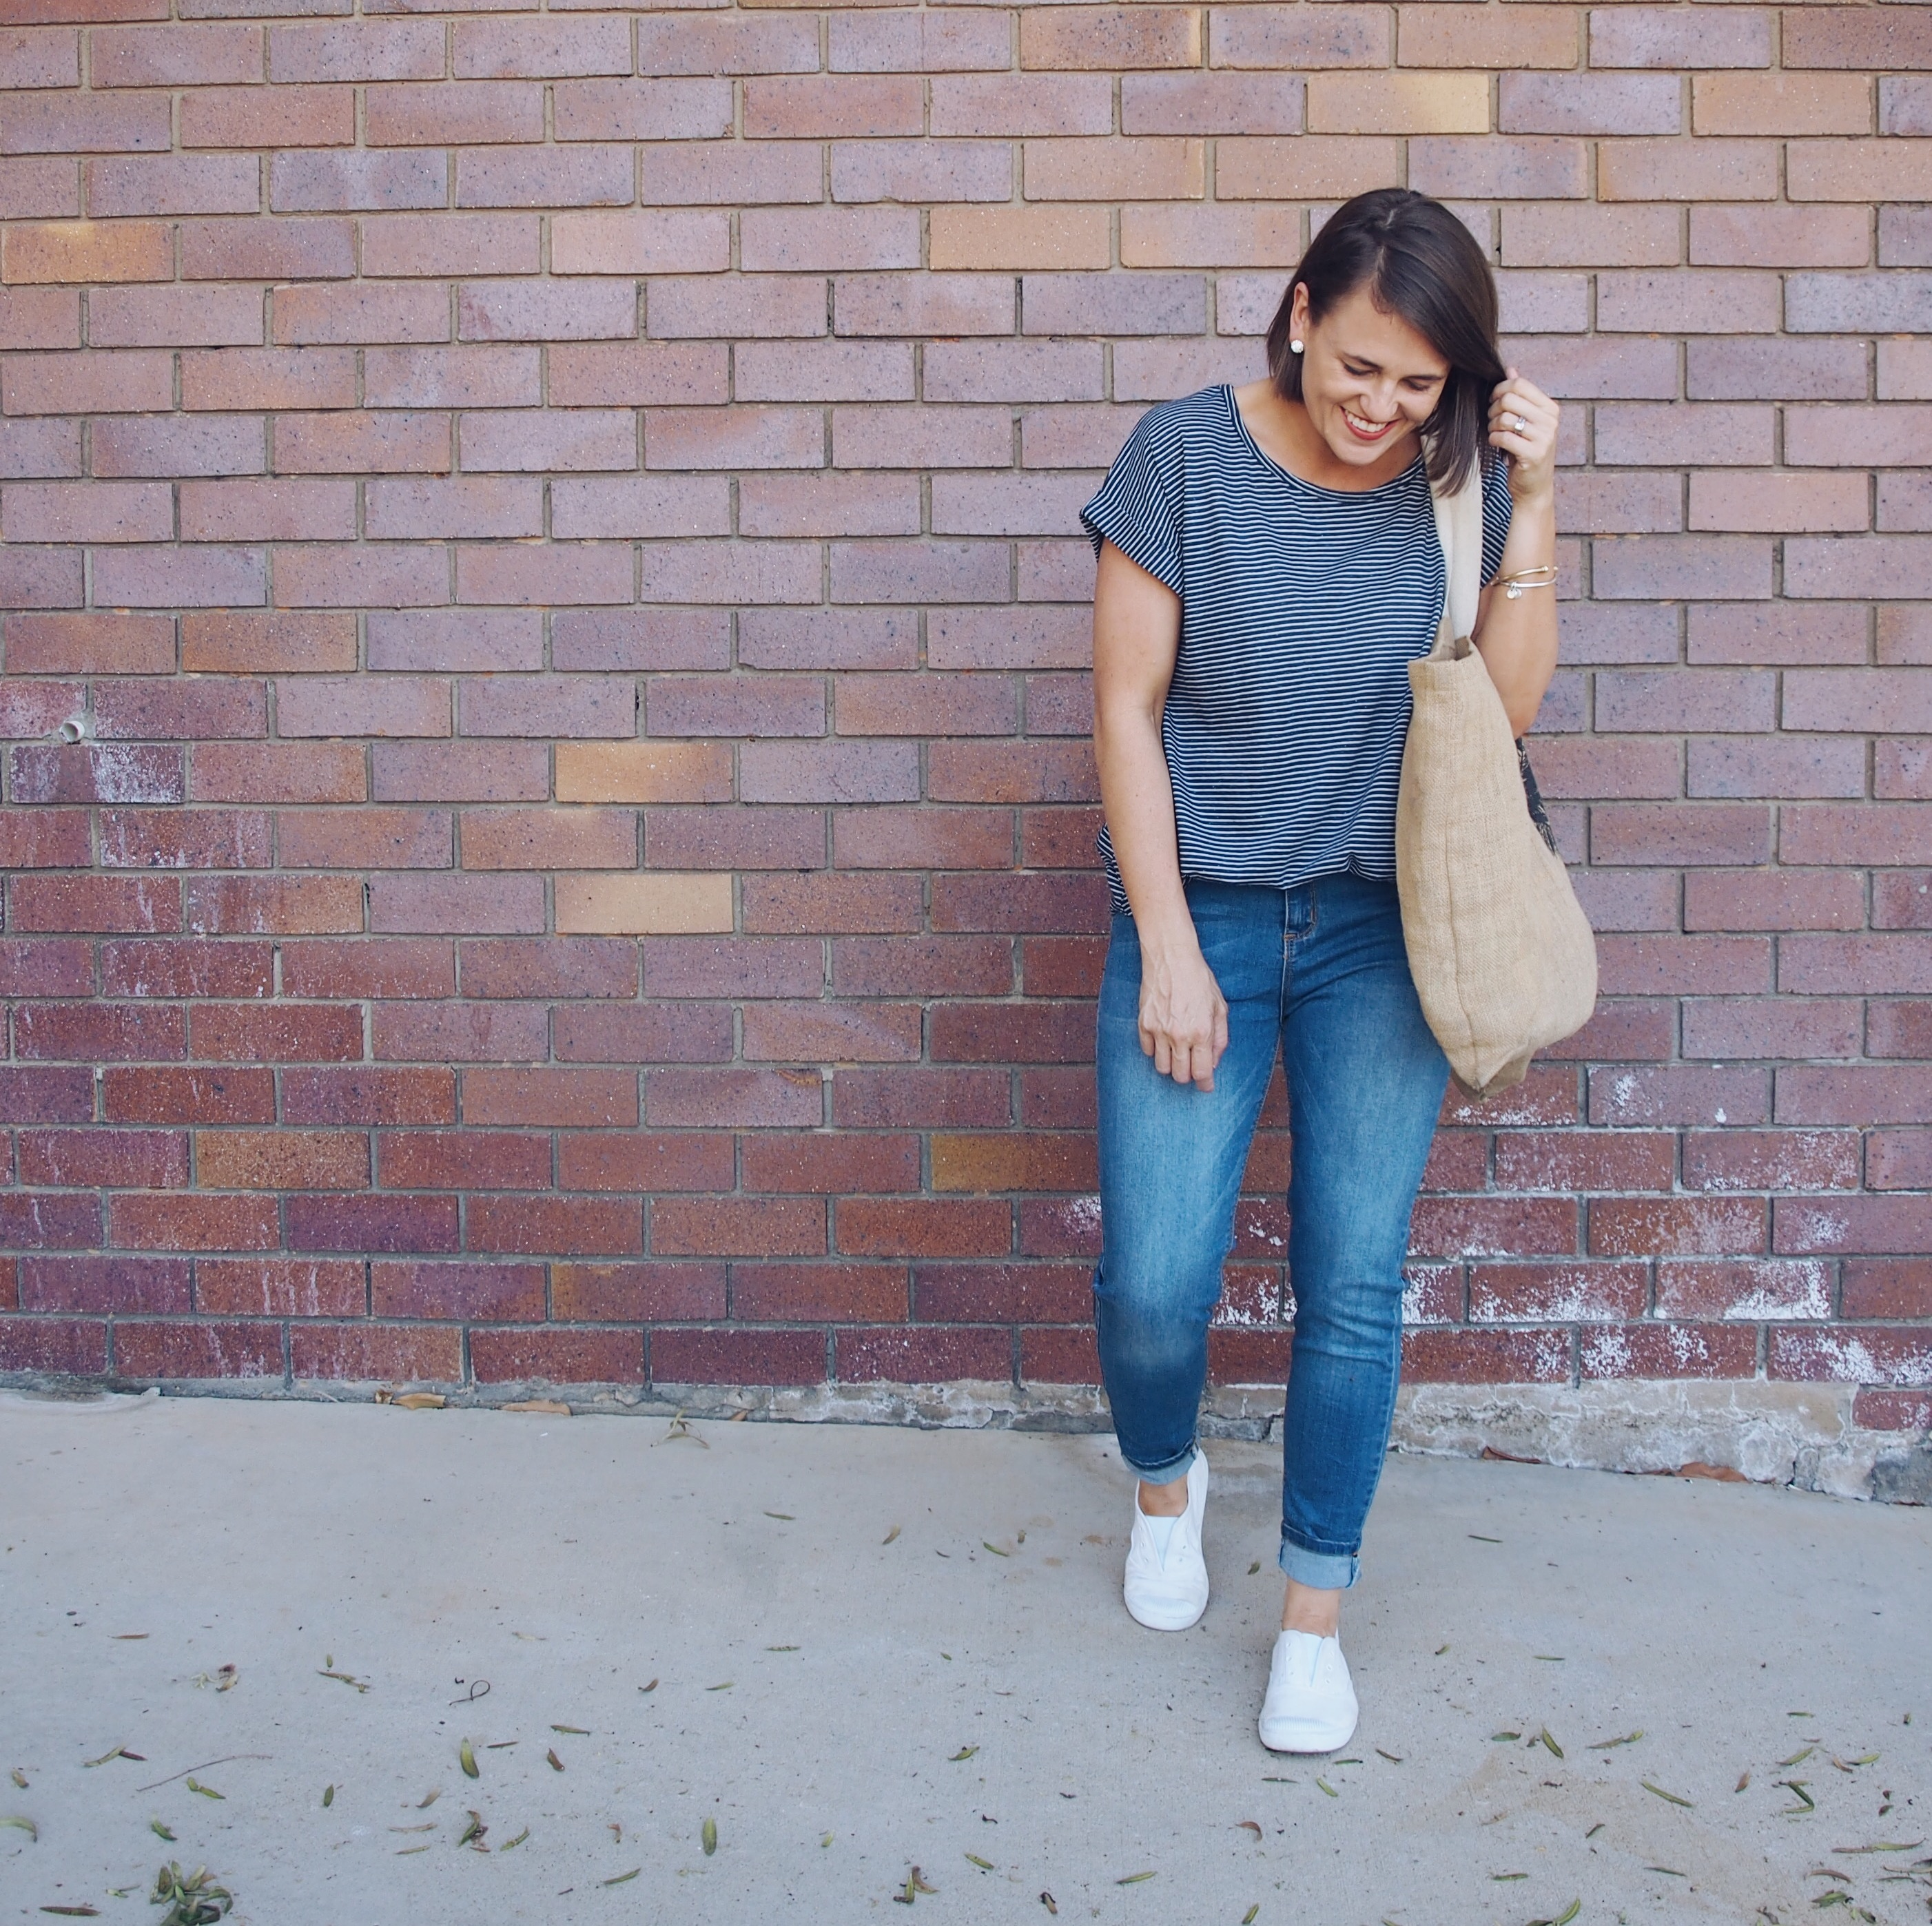 Casual stripe top and jeans outfit blogger style by Pretty Chuffed